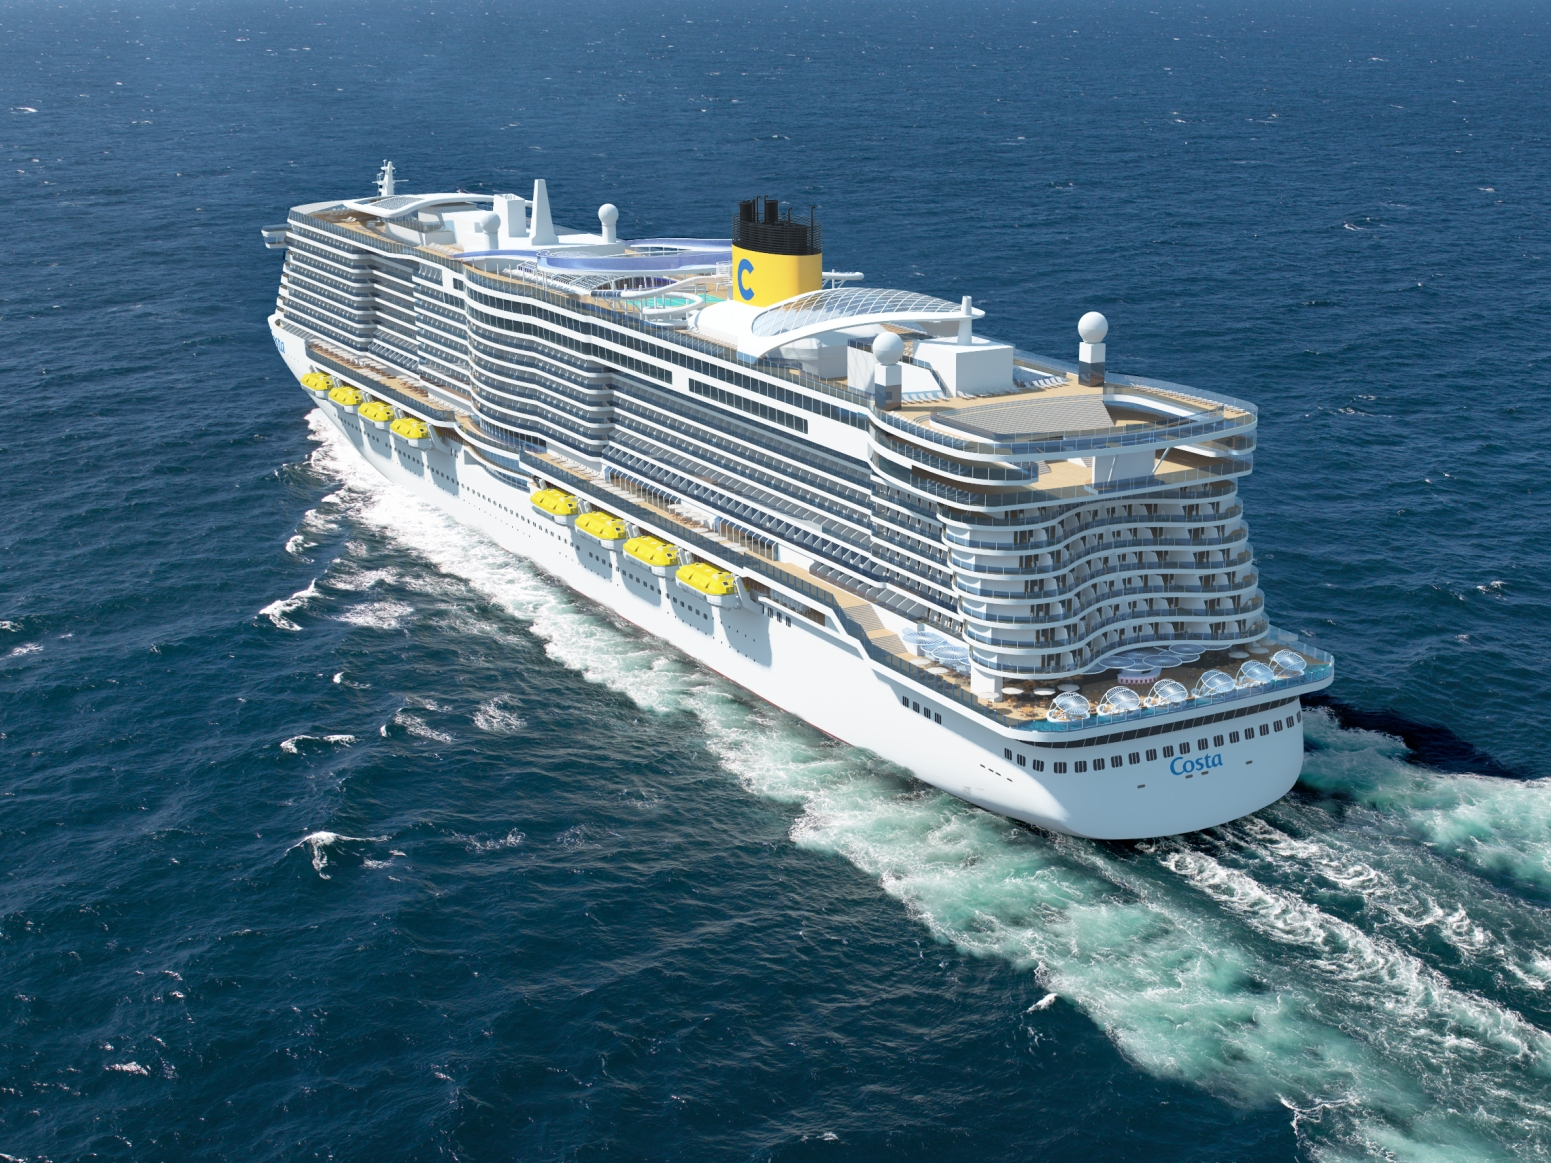 Costa Cruises To Build New Ships With World's Largest Passenger ...